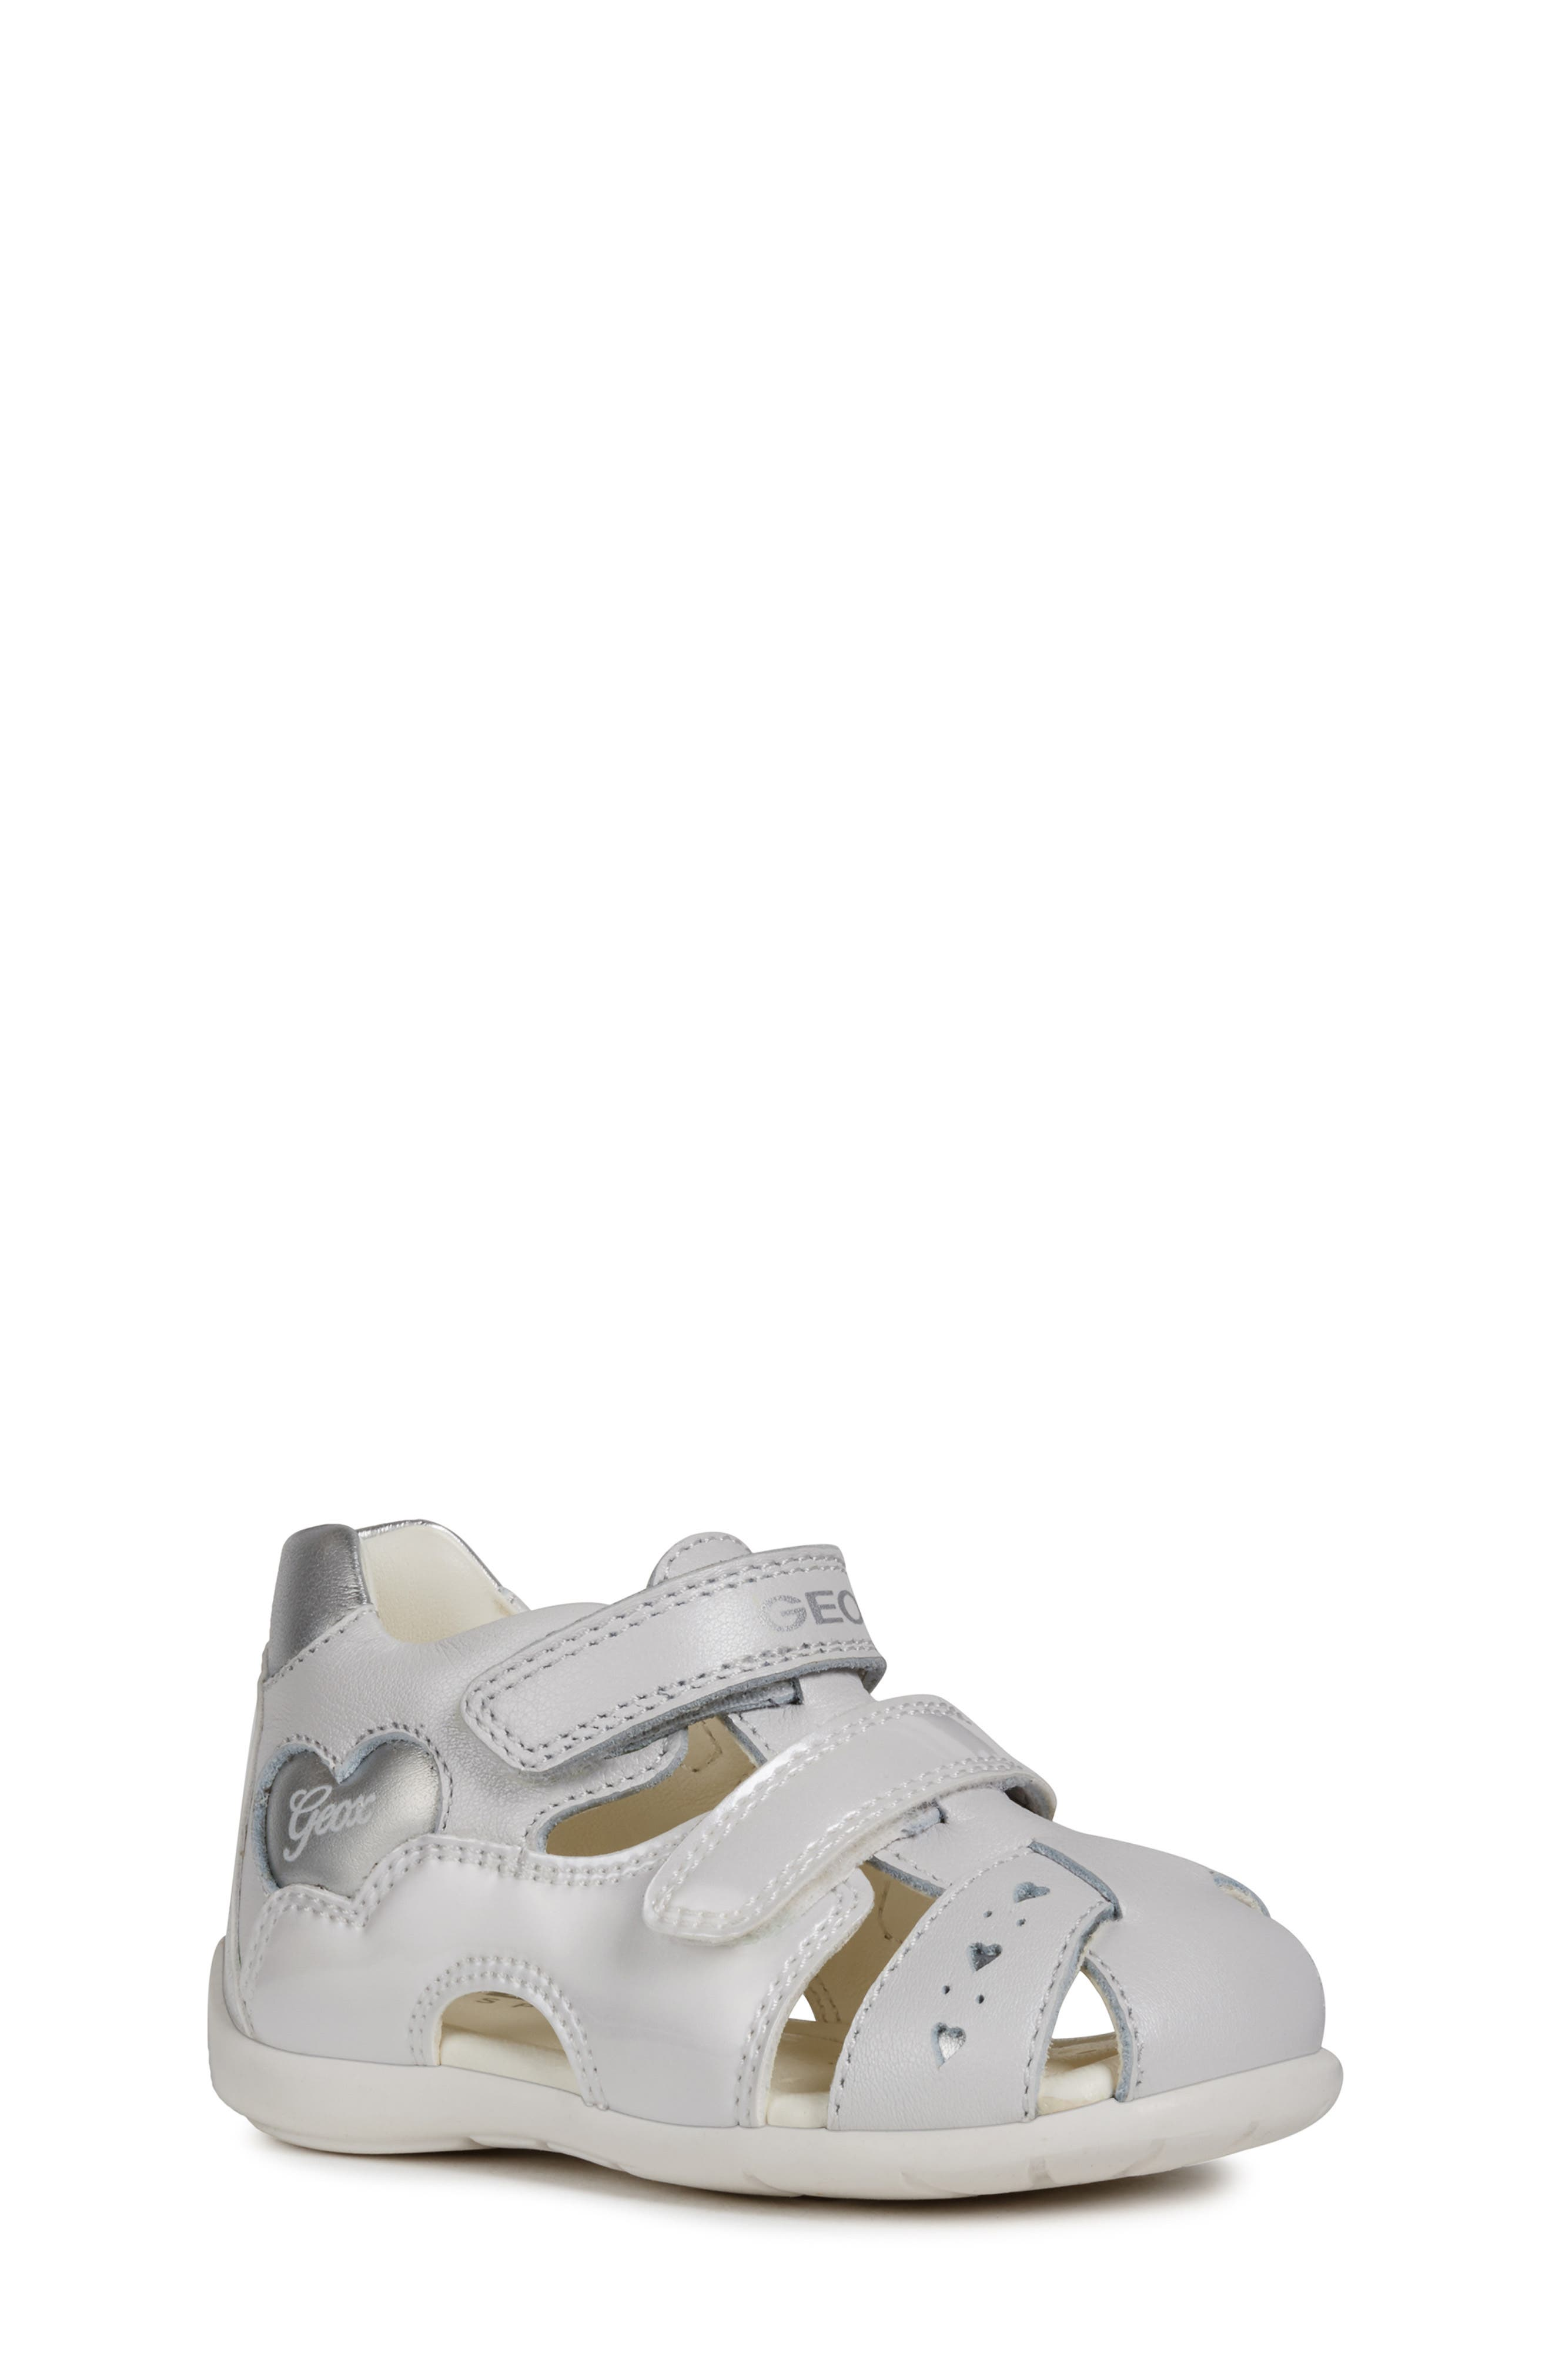 GEOX Kaytan 52 Shimmery Sandal, Main, color, WHITE/ SILVER